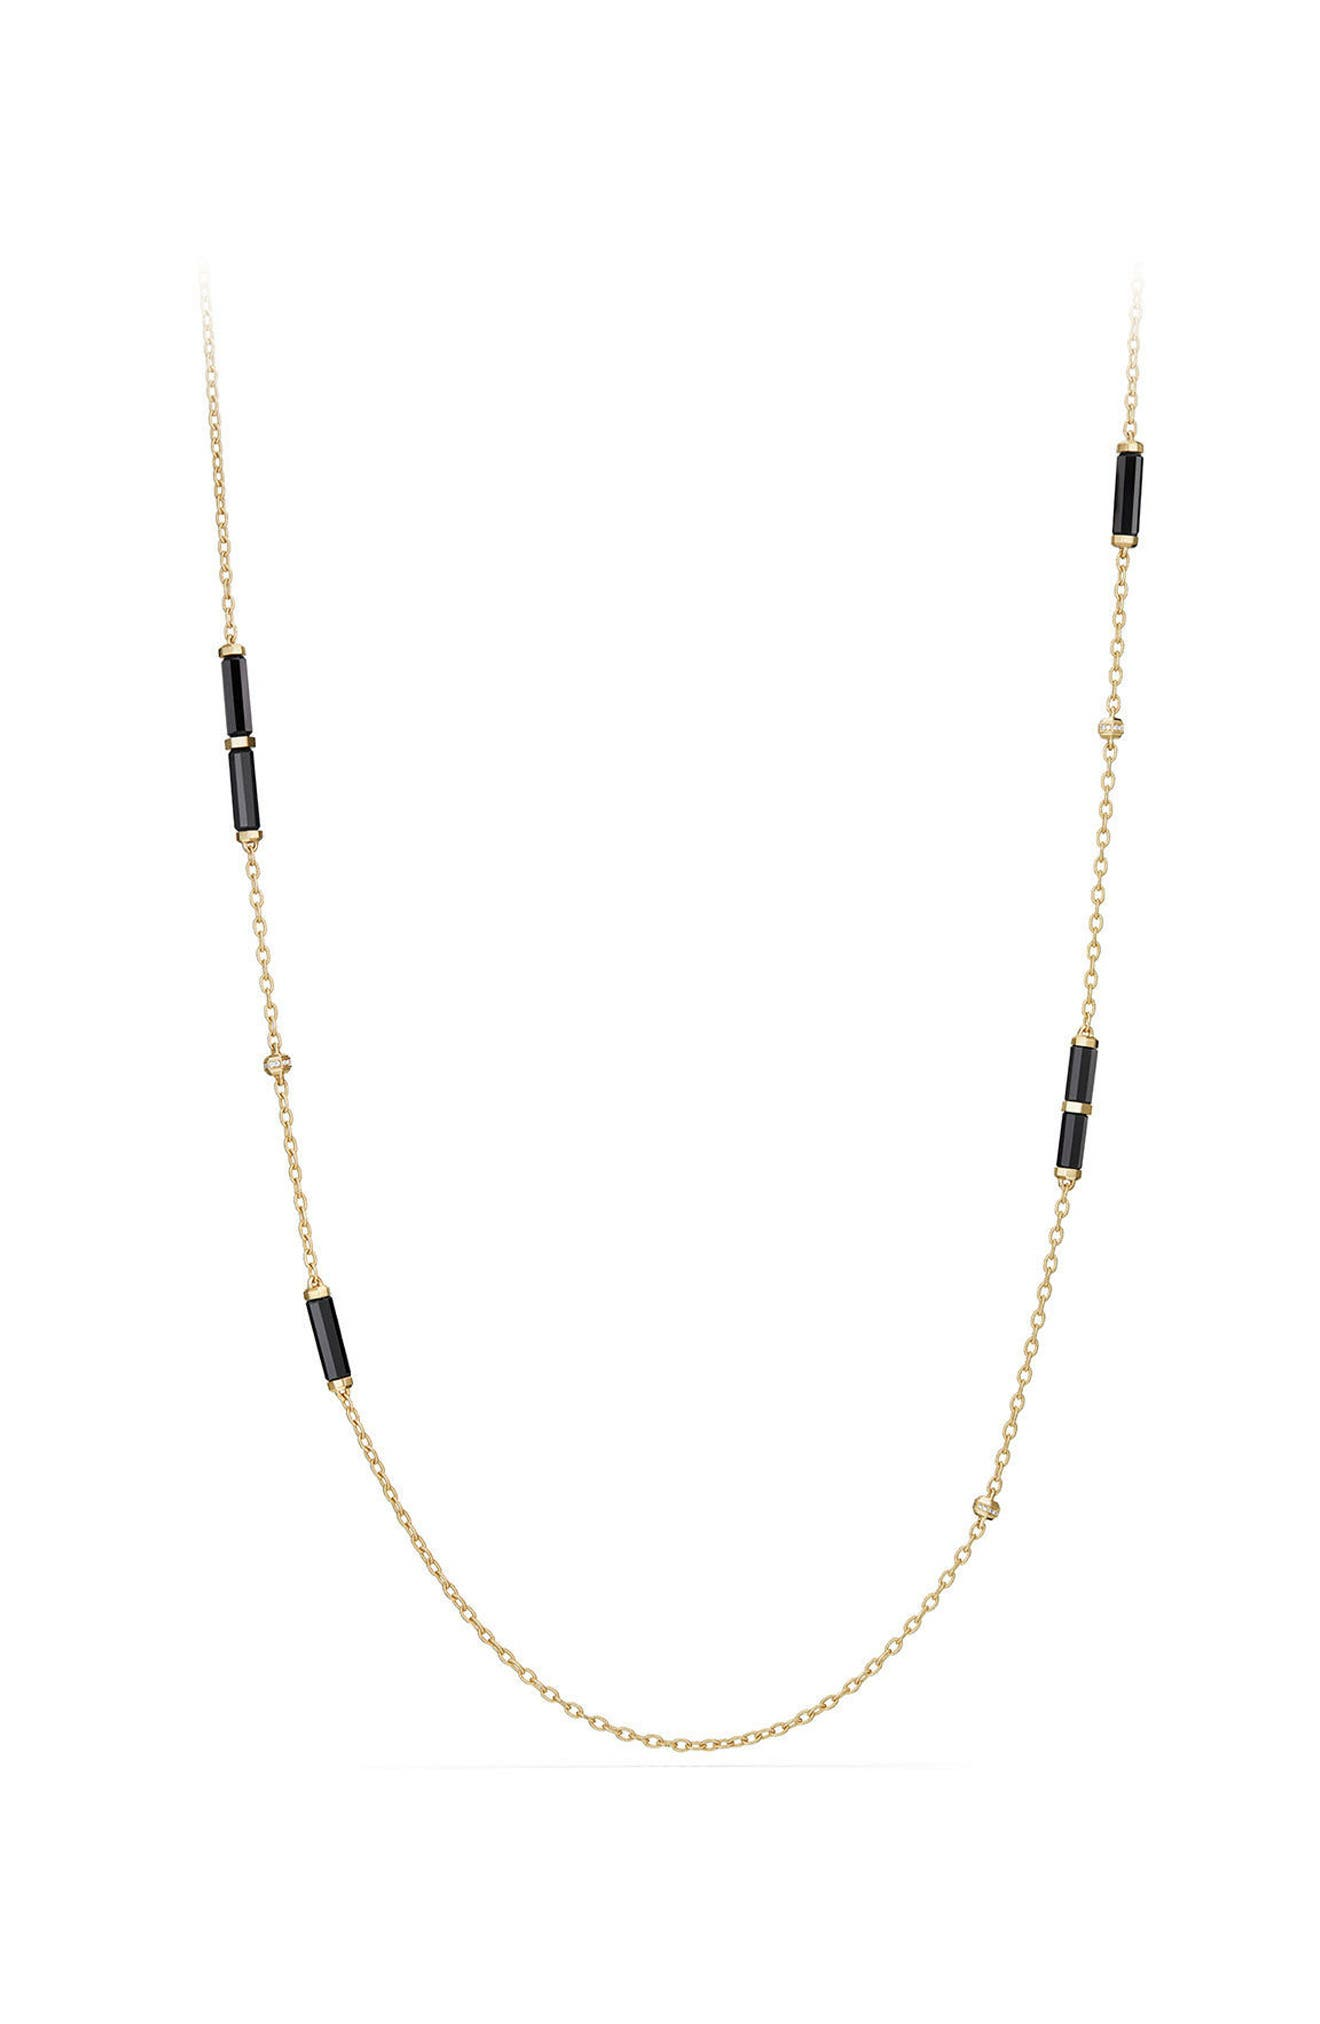 Main Image - David Yurman Barrels Long Station Necklace with Diamonds